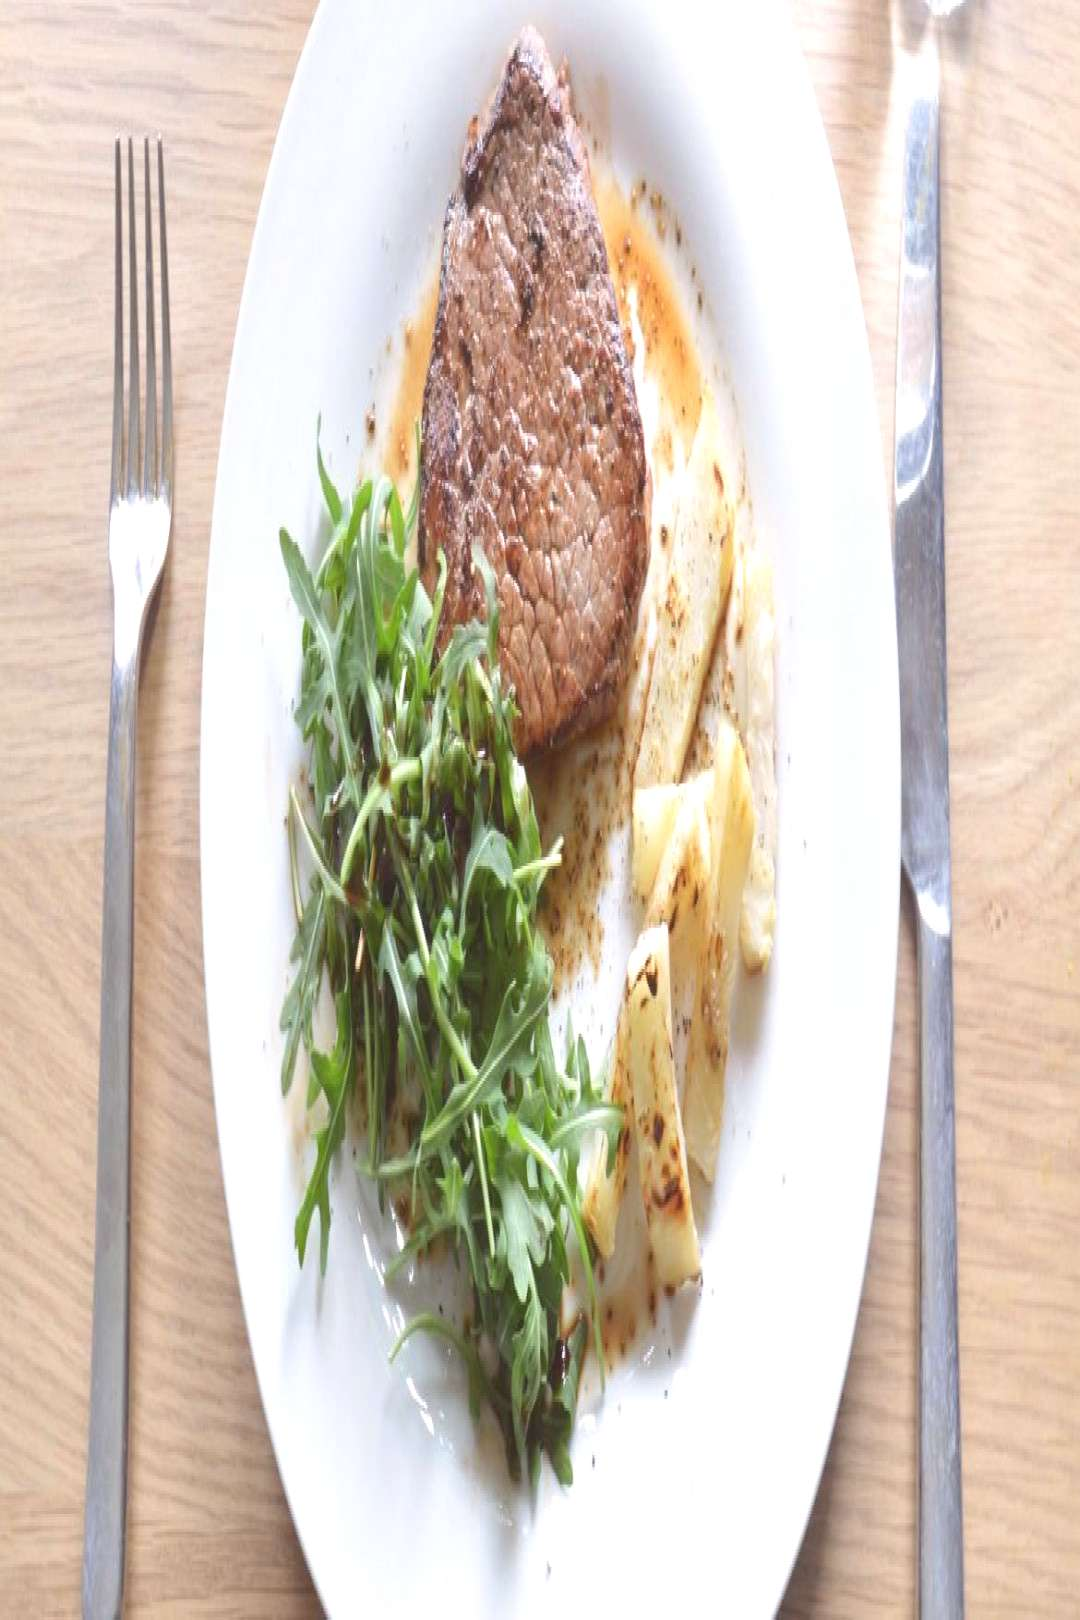 200kcal meal series   Step 2 of the Cambridge Weight Plan   Steak With Celeriac ... - -